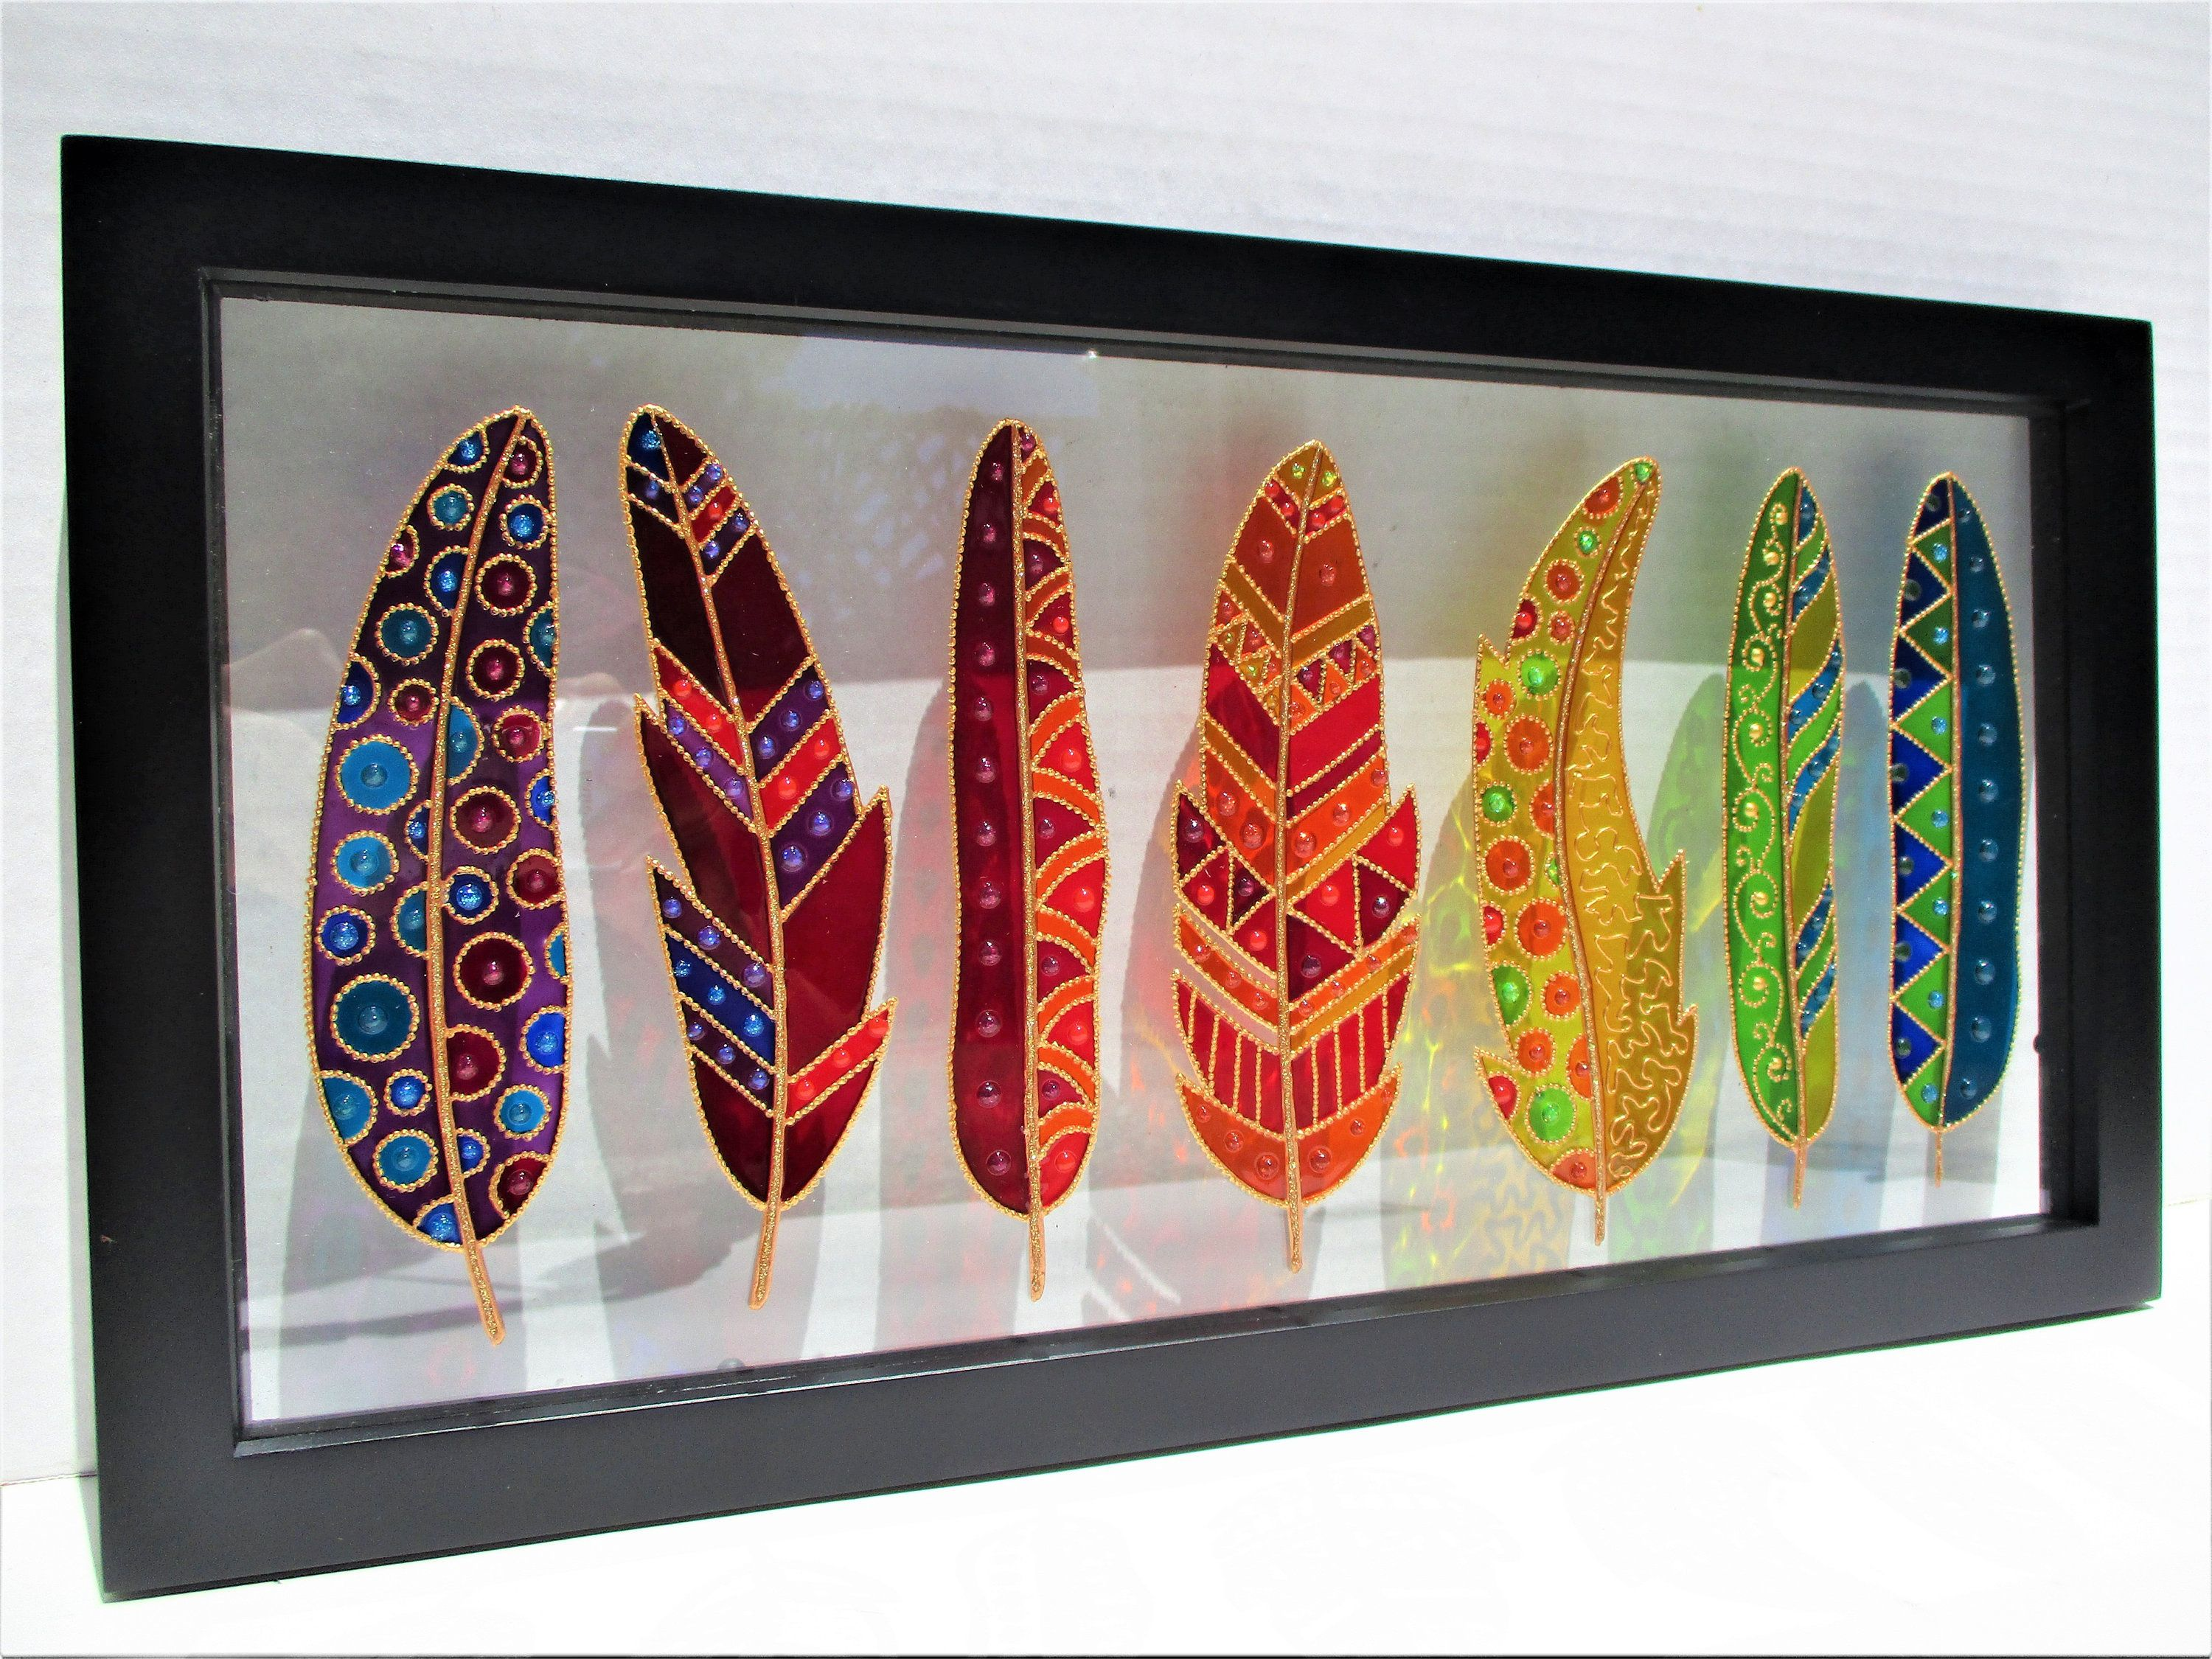 Feather Art Glass Painting Bohemian Decor Stained Glass Glass Glass Painting Designs Glass Painting Glass Painting Patterns